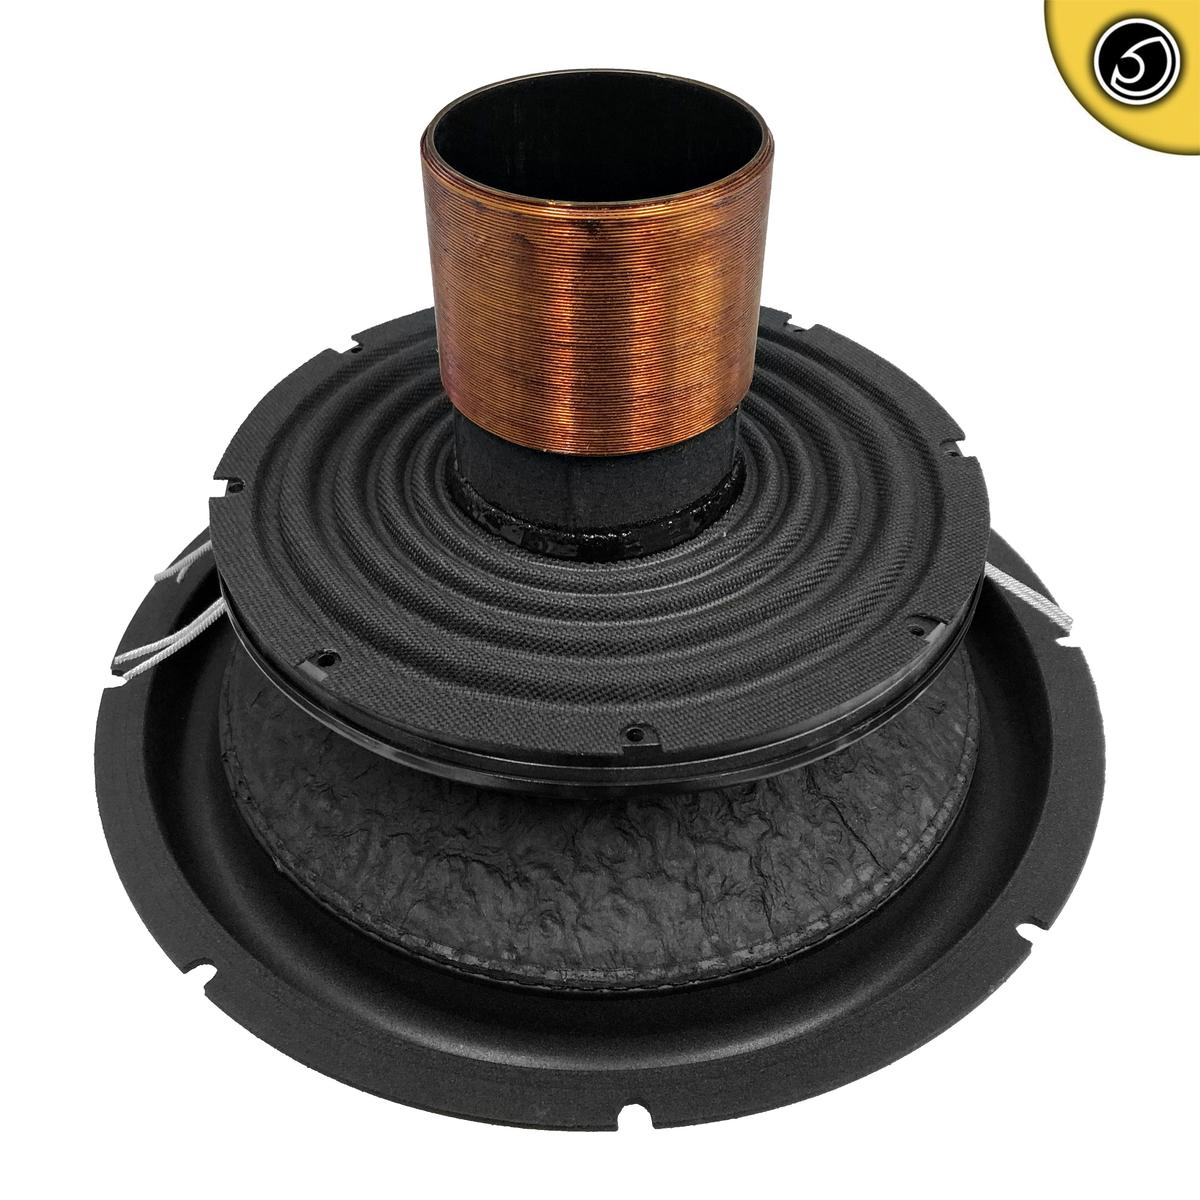 Bassface XPL12.1RC 12 Inch 30cm Car Subwoofer Recone Repair Kit 2x2Ohm DVC